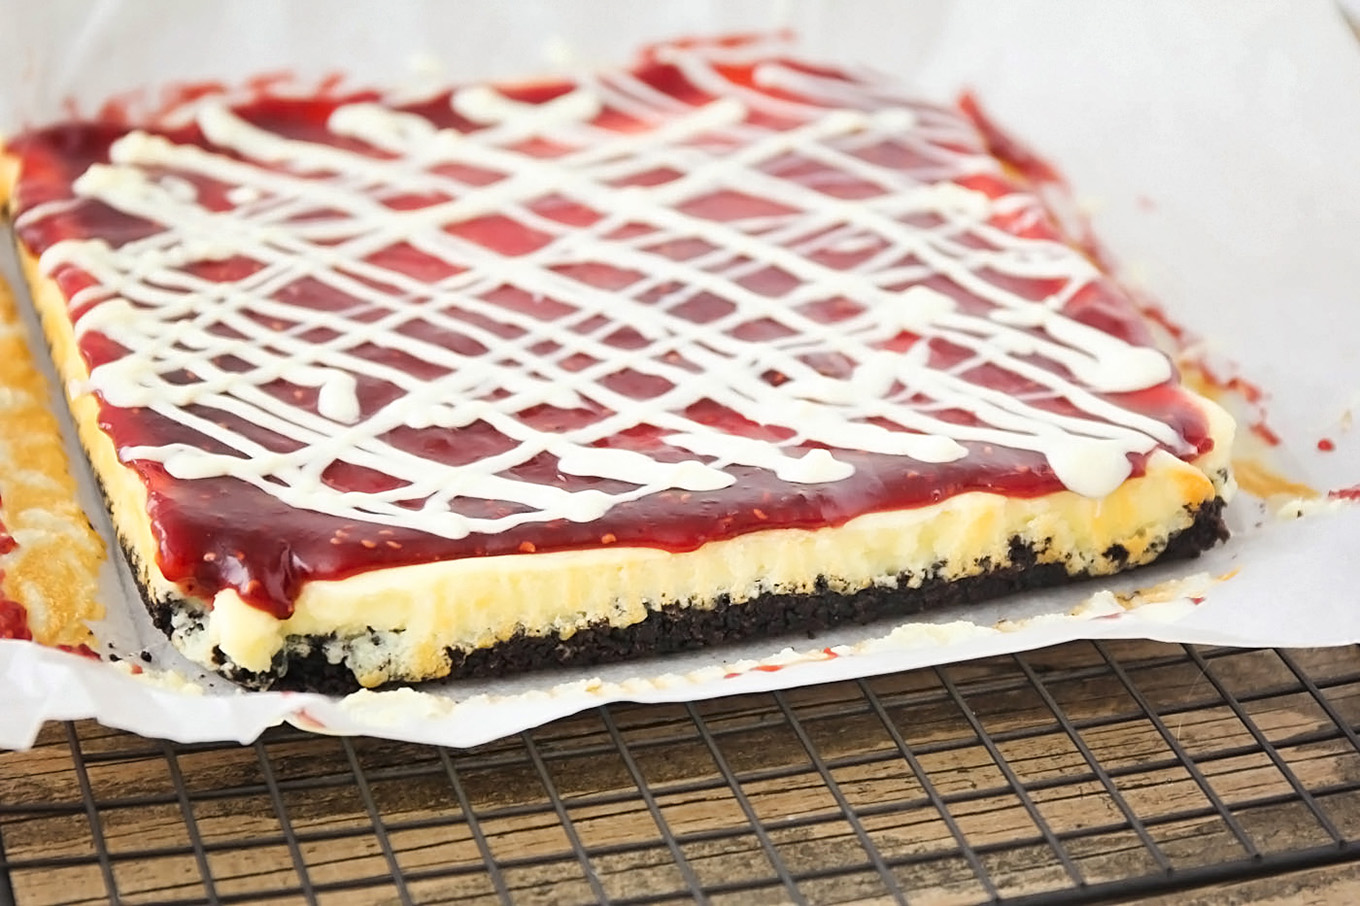 These White Chocolate Raspberry Cheesecake Bars don't just look fancy they taste fancy too! The white chocolate and raspberry flavors paired with a homemade oreo crust make them hard to resist.